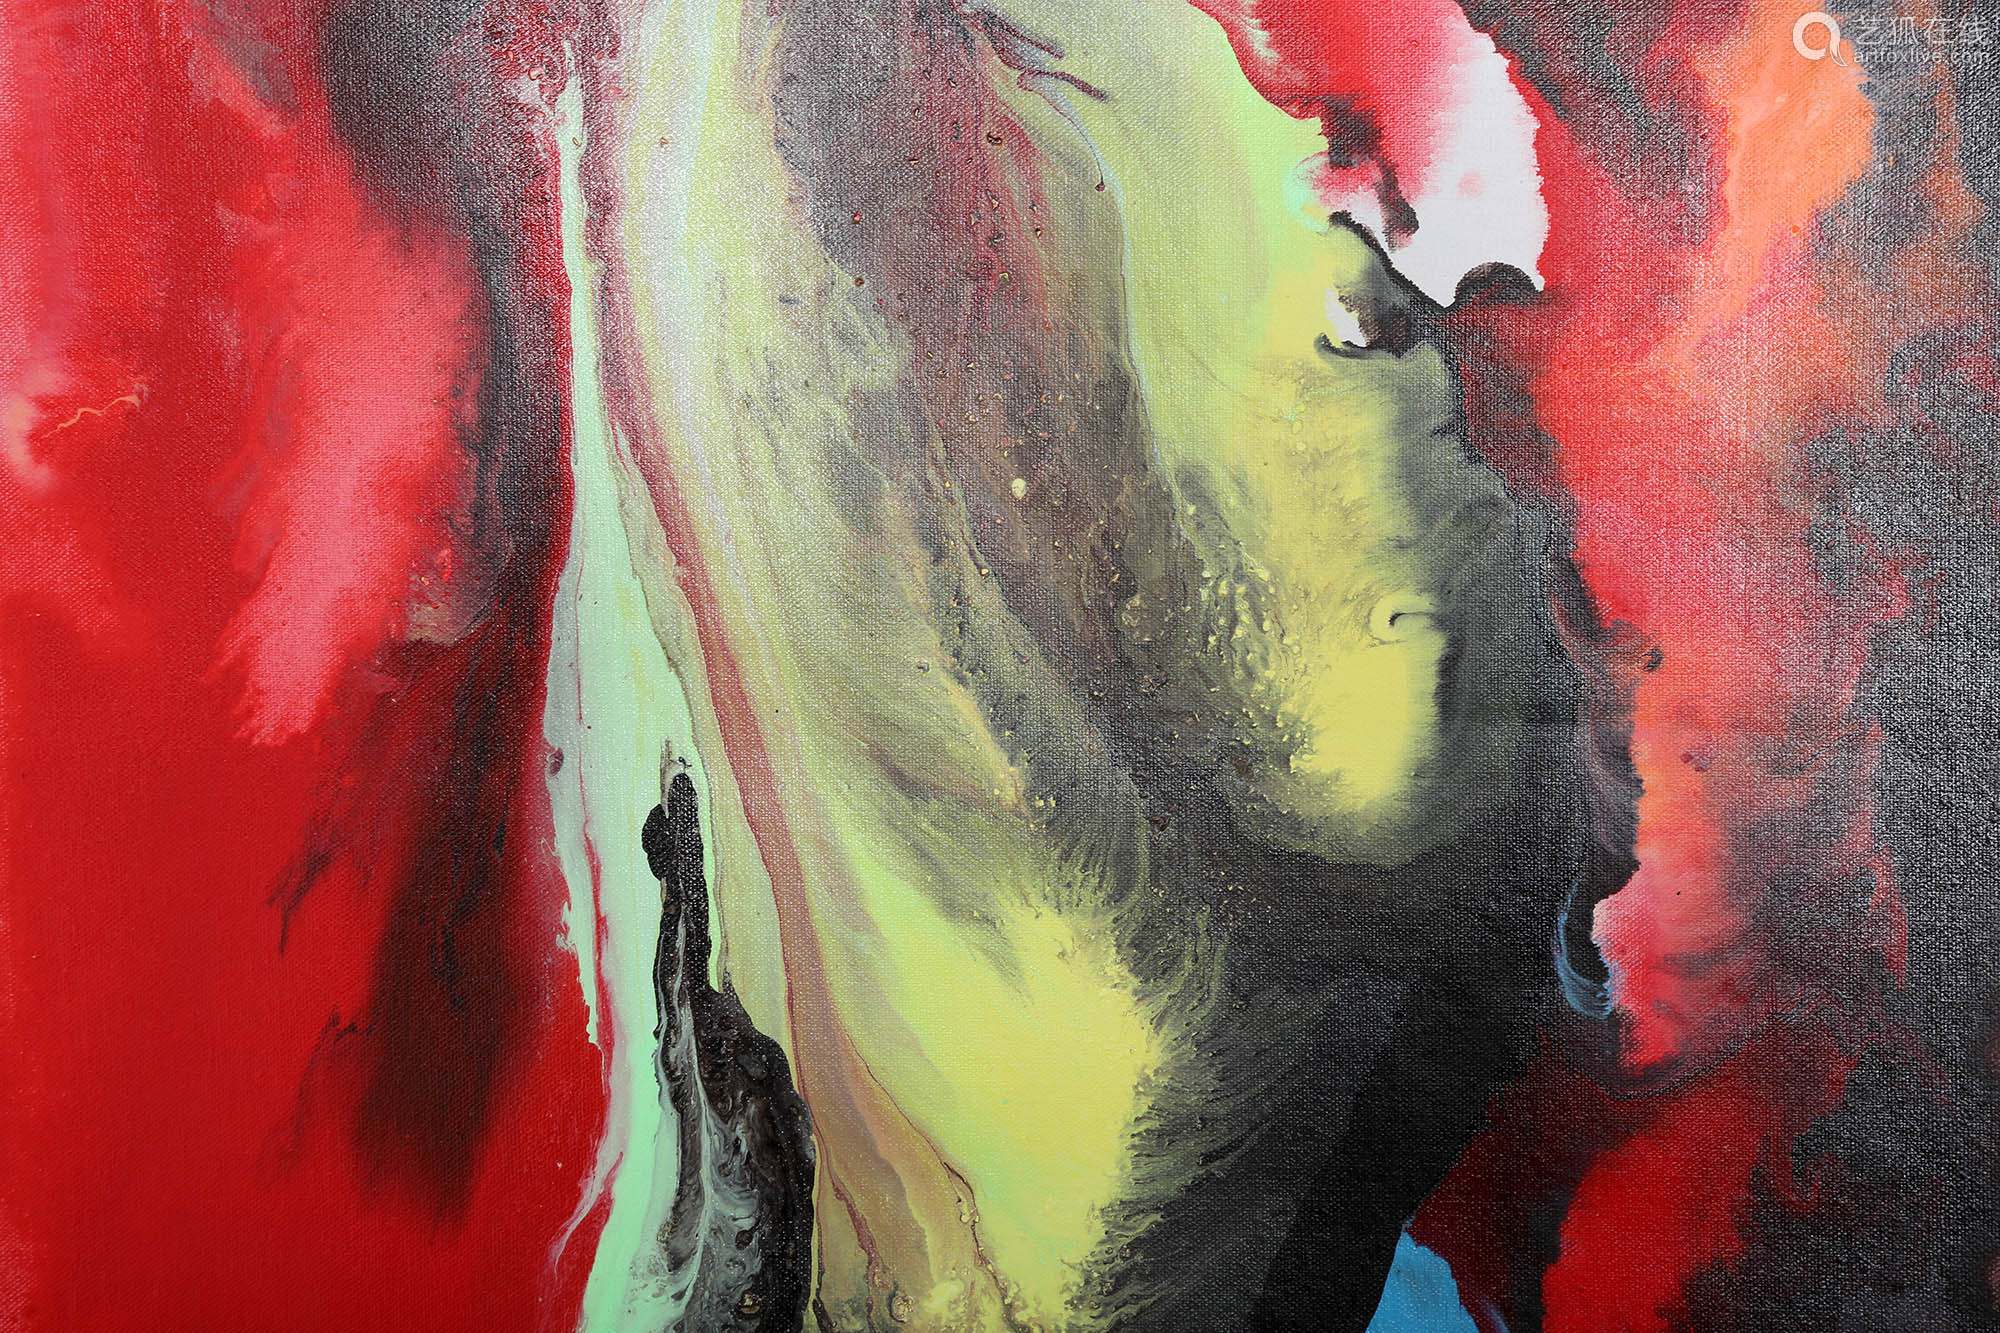 OIL ON CANVAS, SIGNED BY QIU YAN, UNFRAMED.OH033.